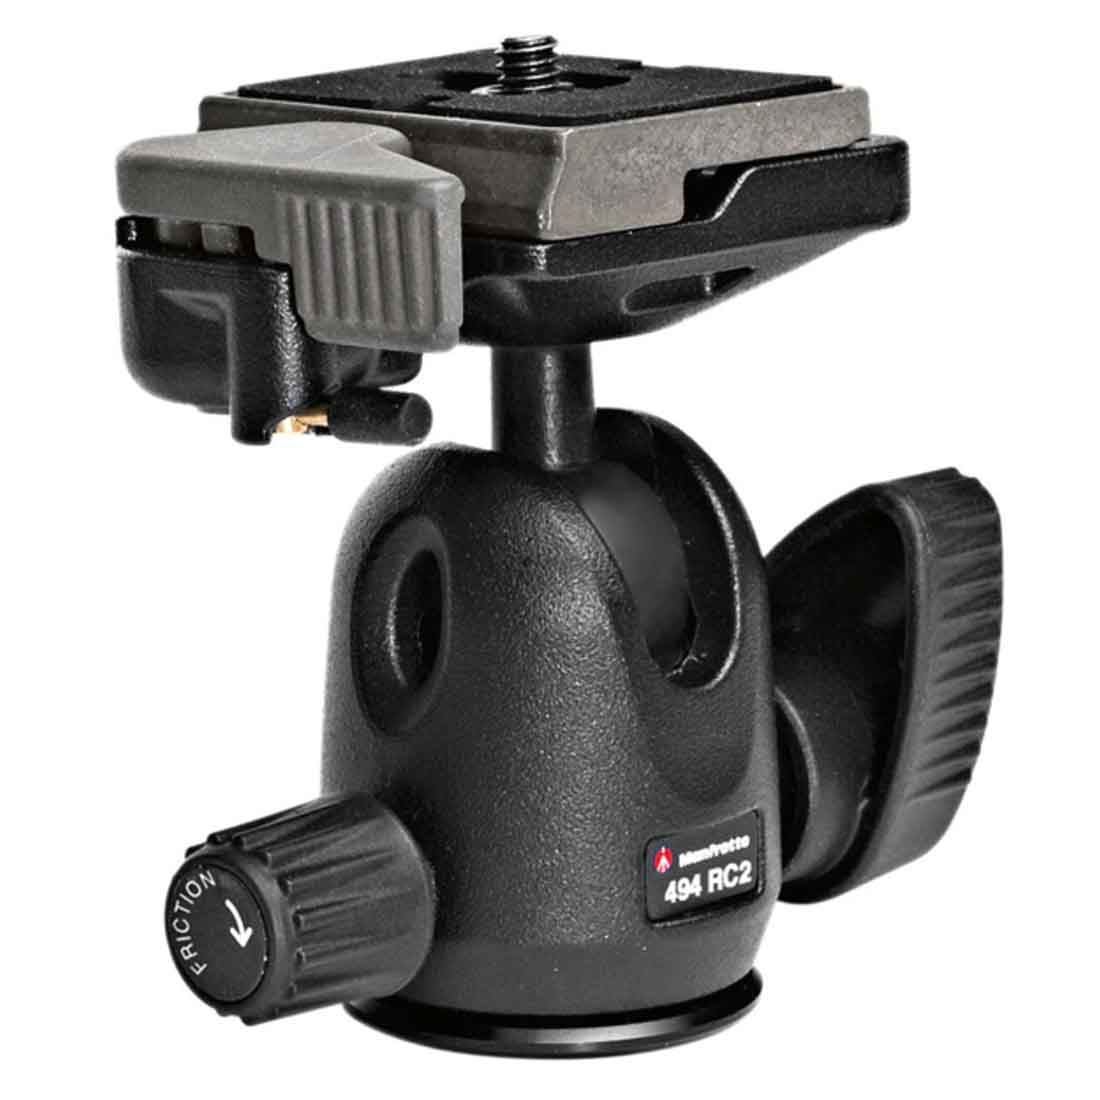 Kuglasta glava Manfrotto 494RC2 Mini